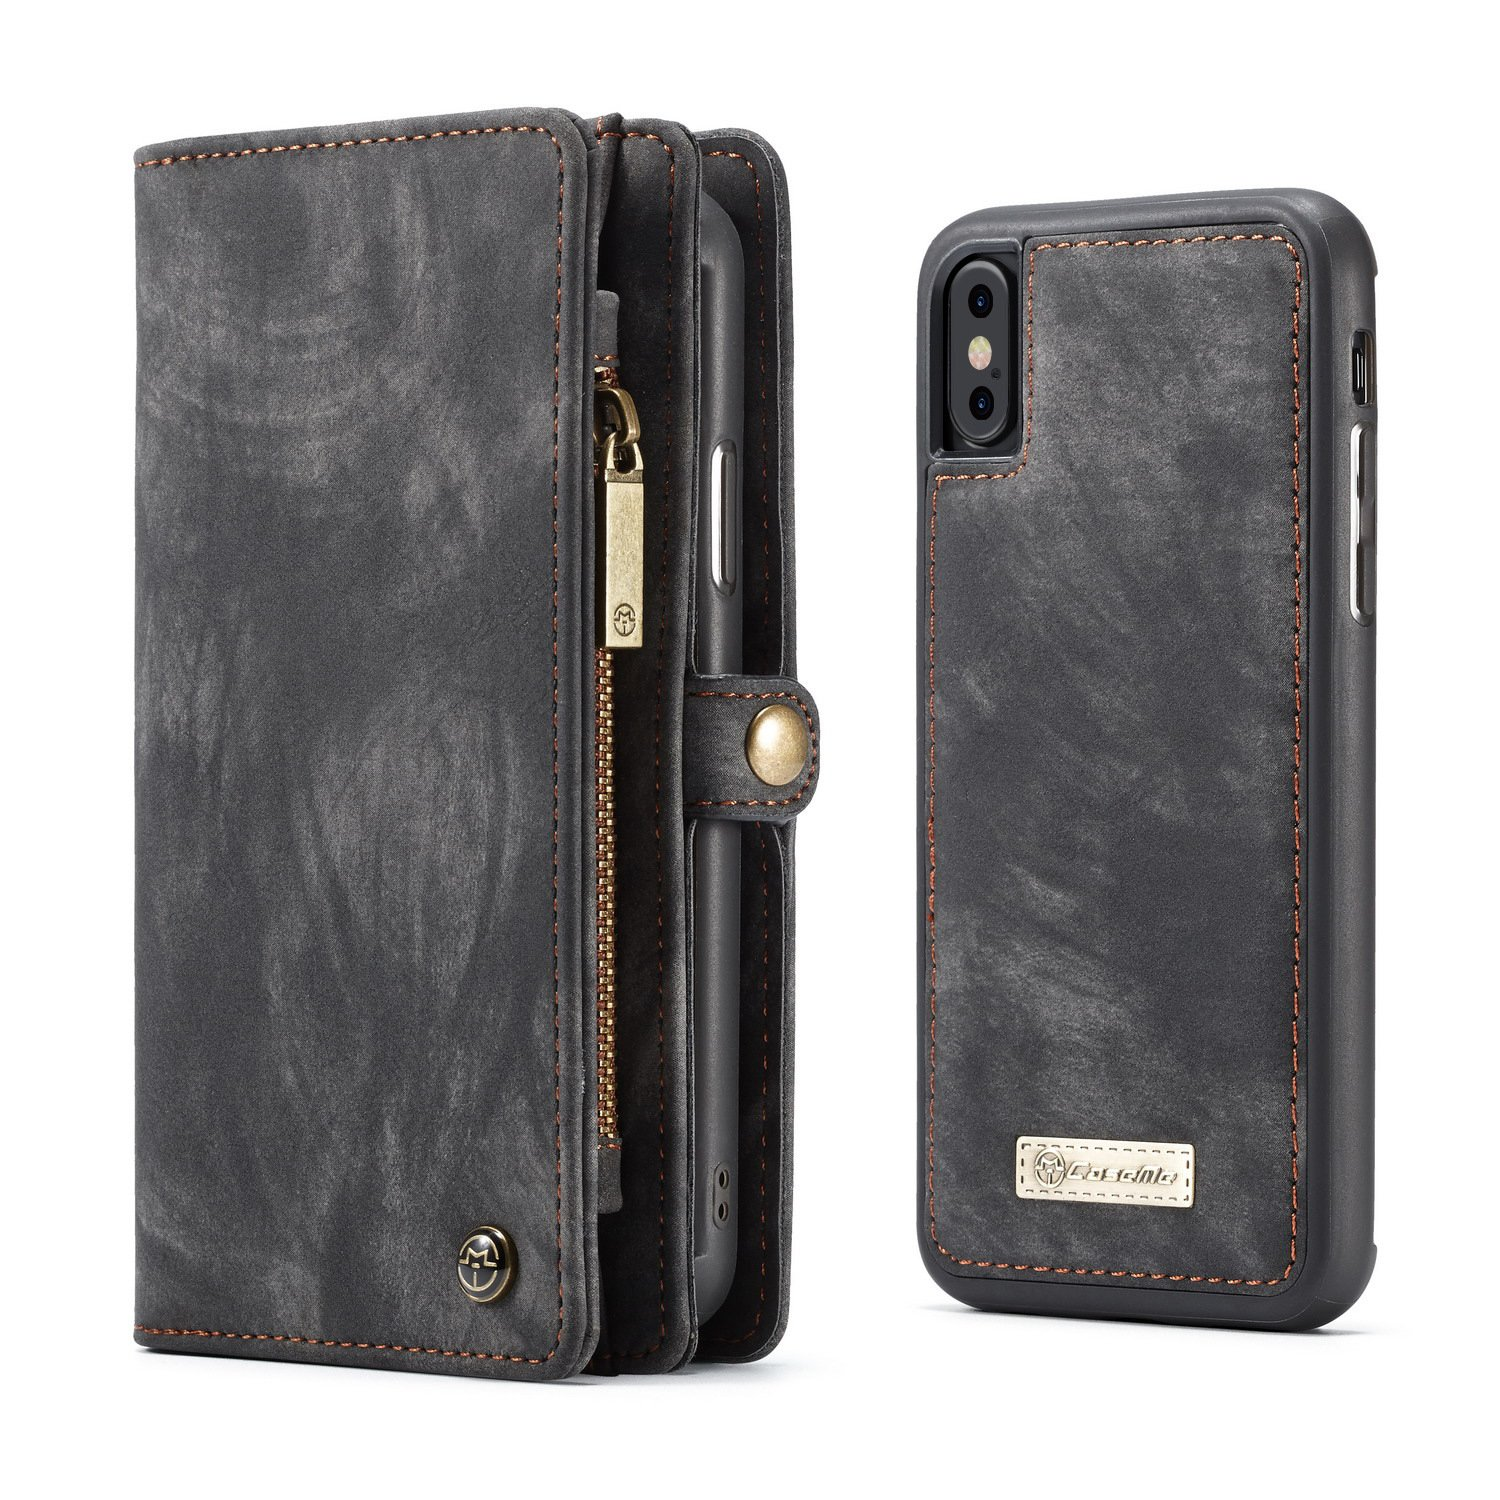 Yamoo iPhone X Case Combo iPhone X Wallet Leather Case with Detachable Magnetic Hard Case, Card Holder (Black), iPhone X 3D Full Coverage HD Clear 9H Tempered Glass Screen Protector